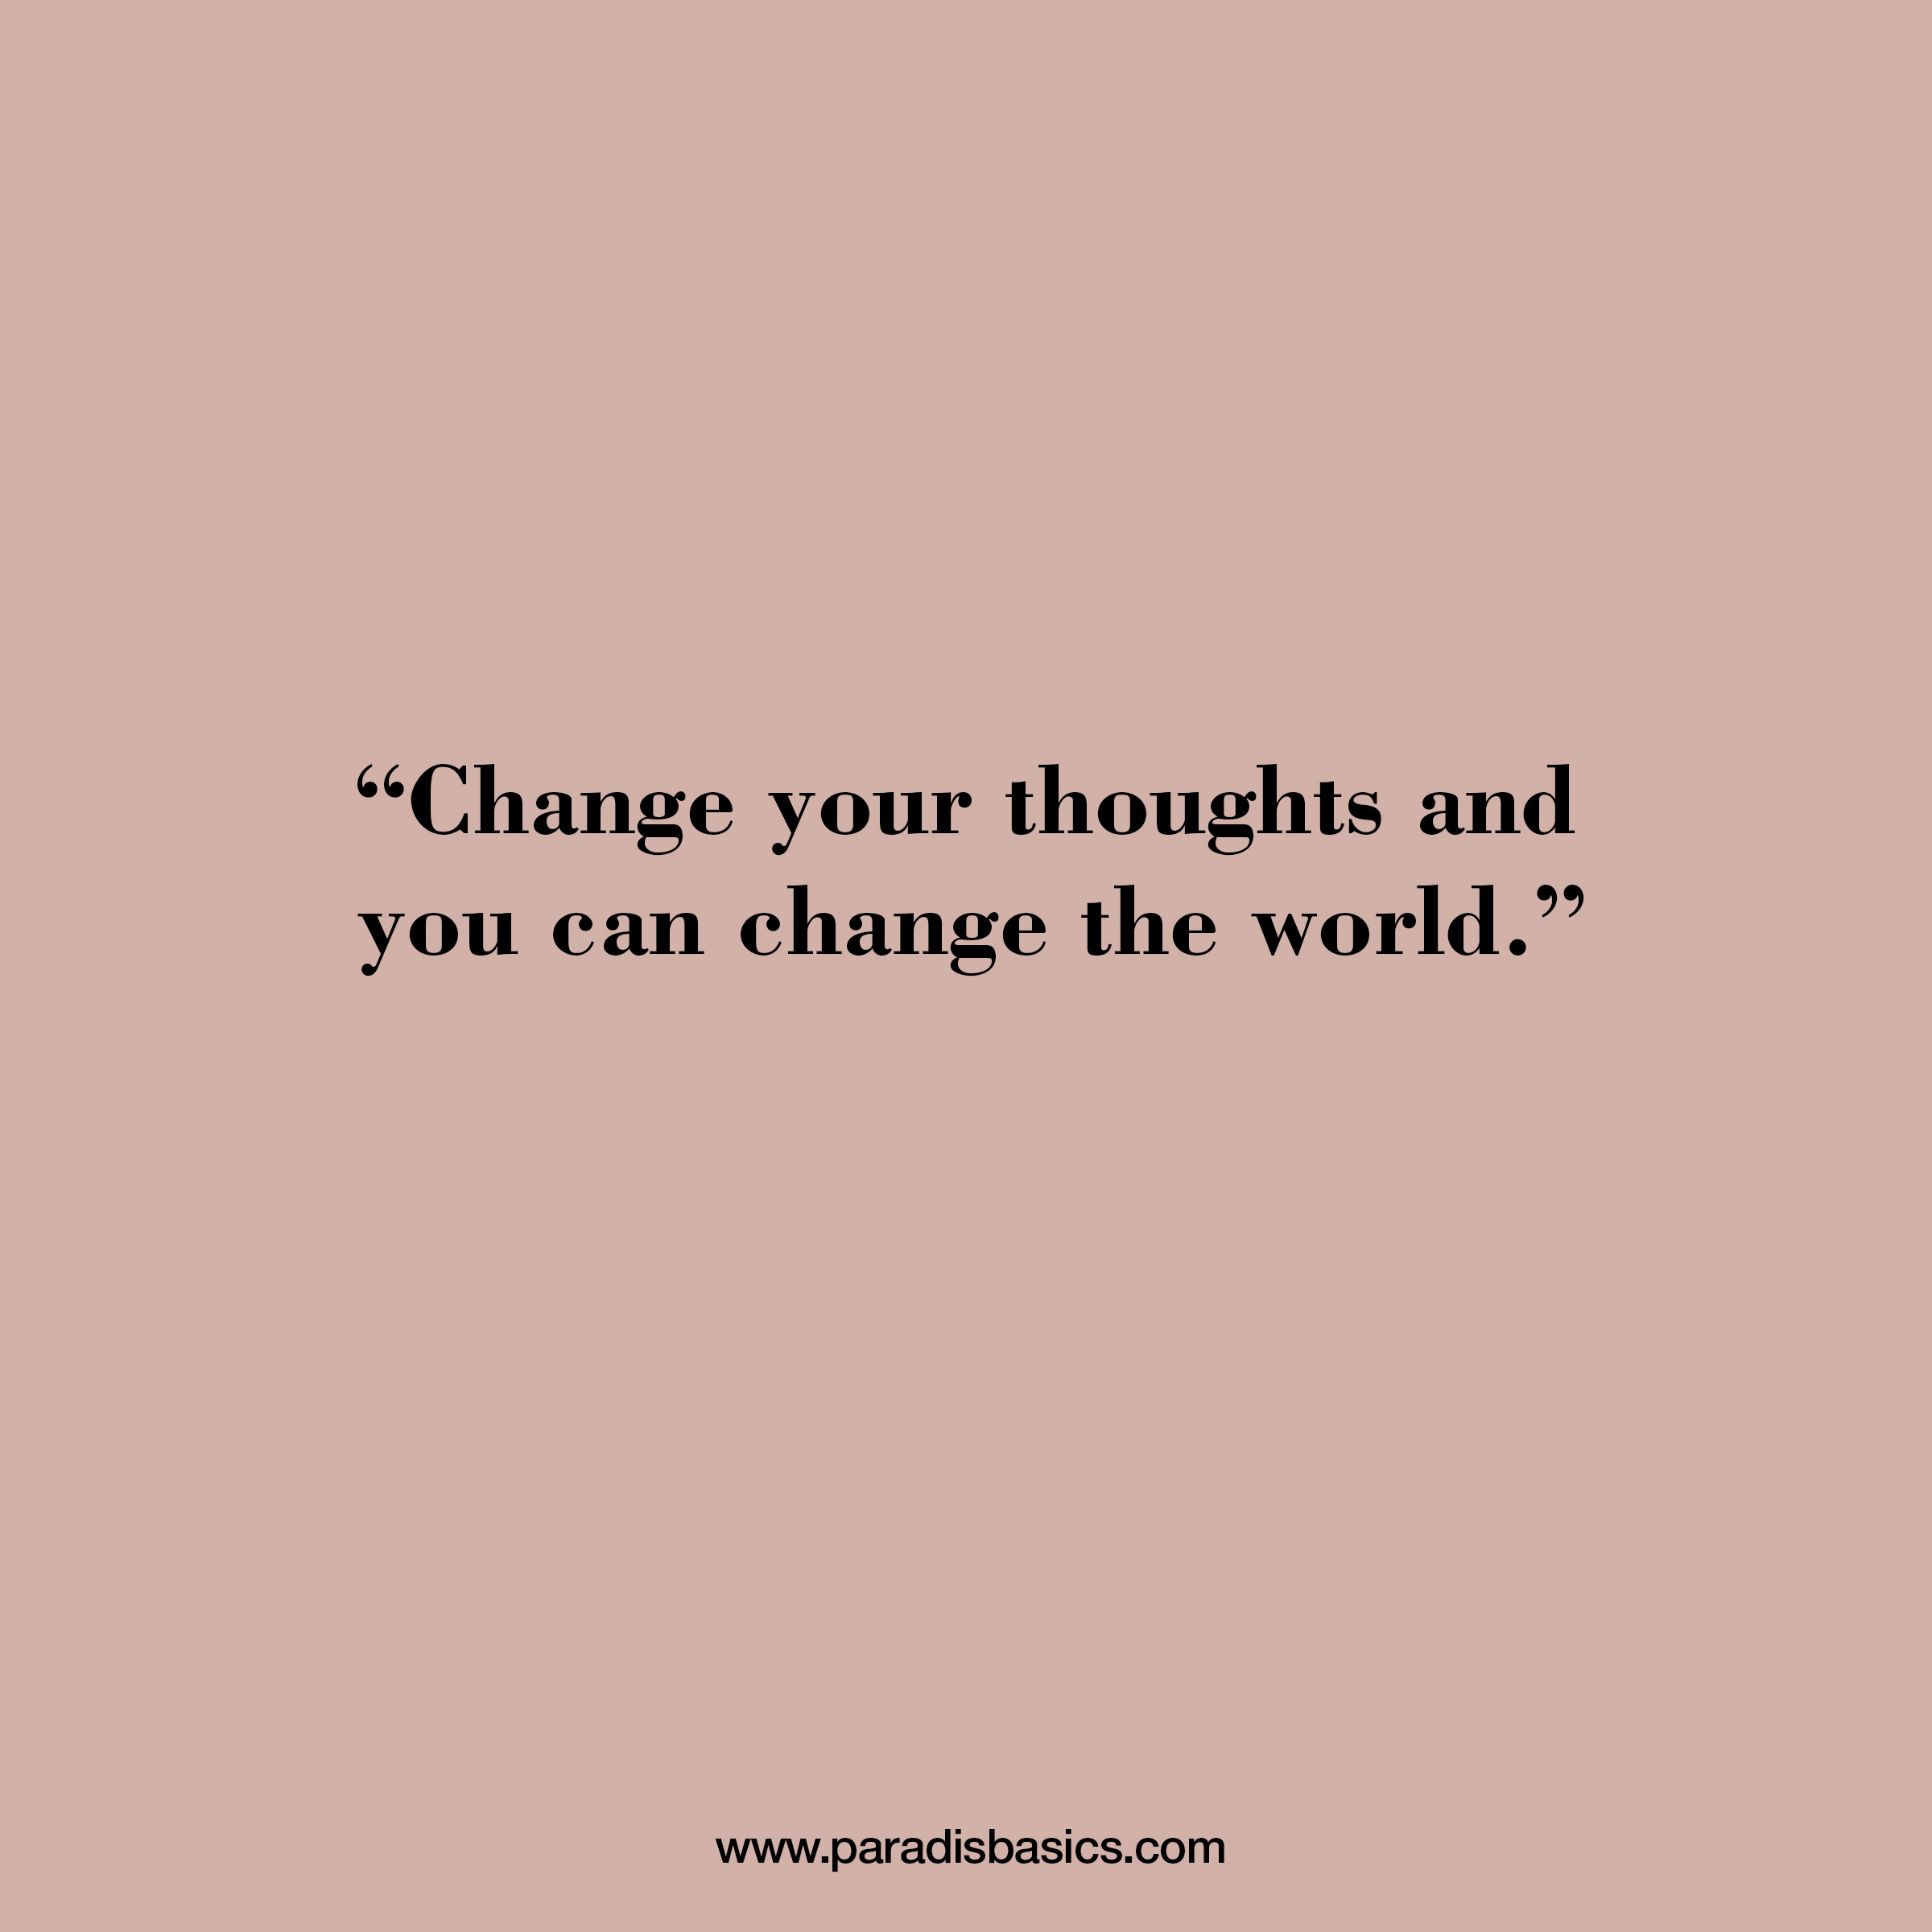 Change your thoughts and you can change the world